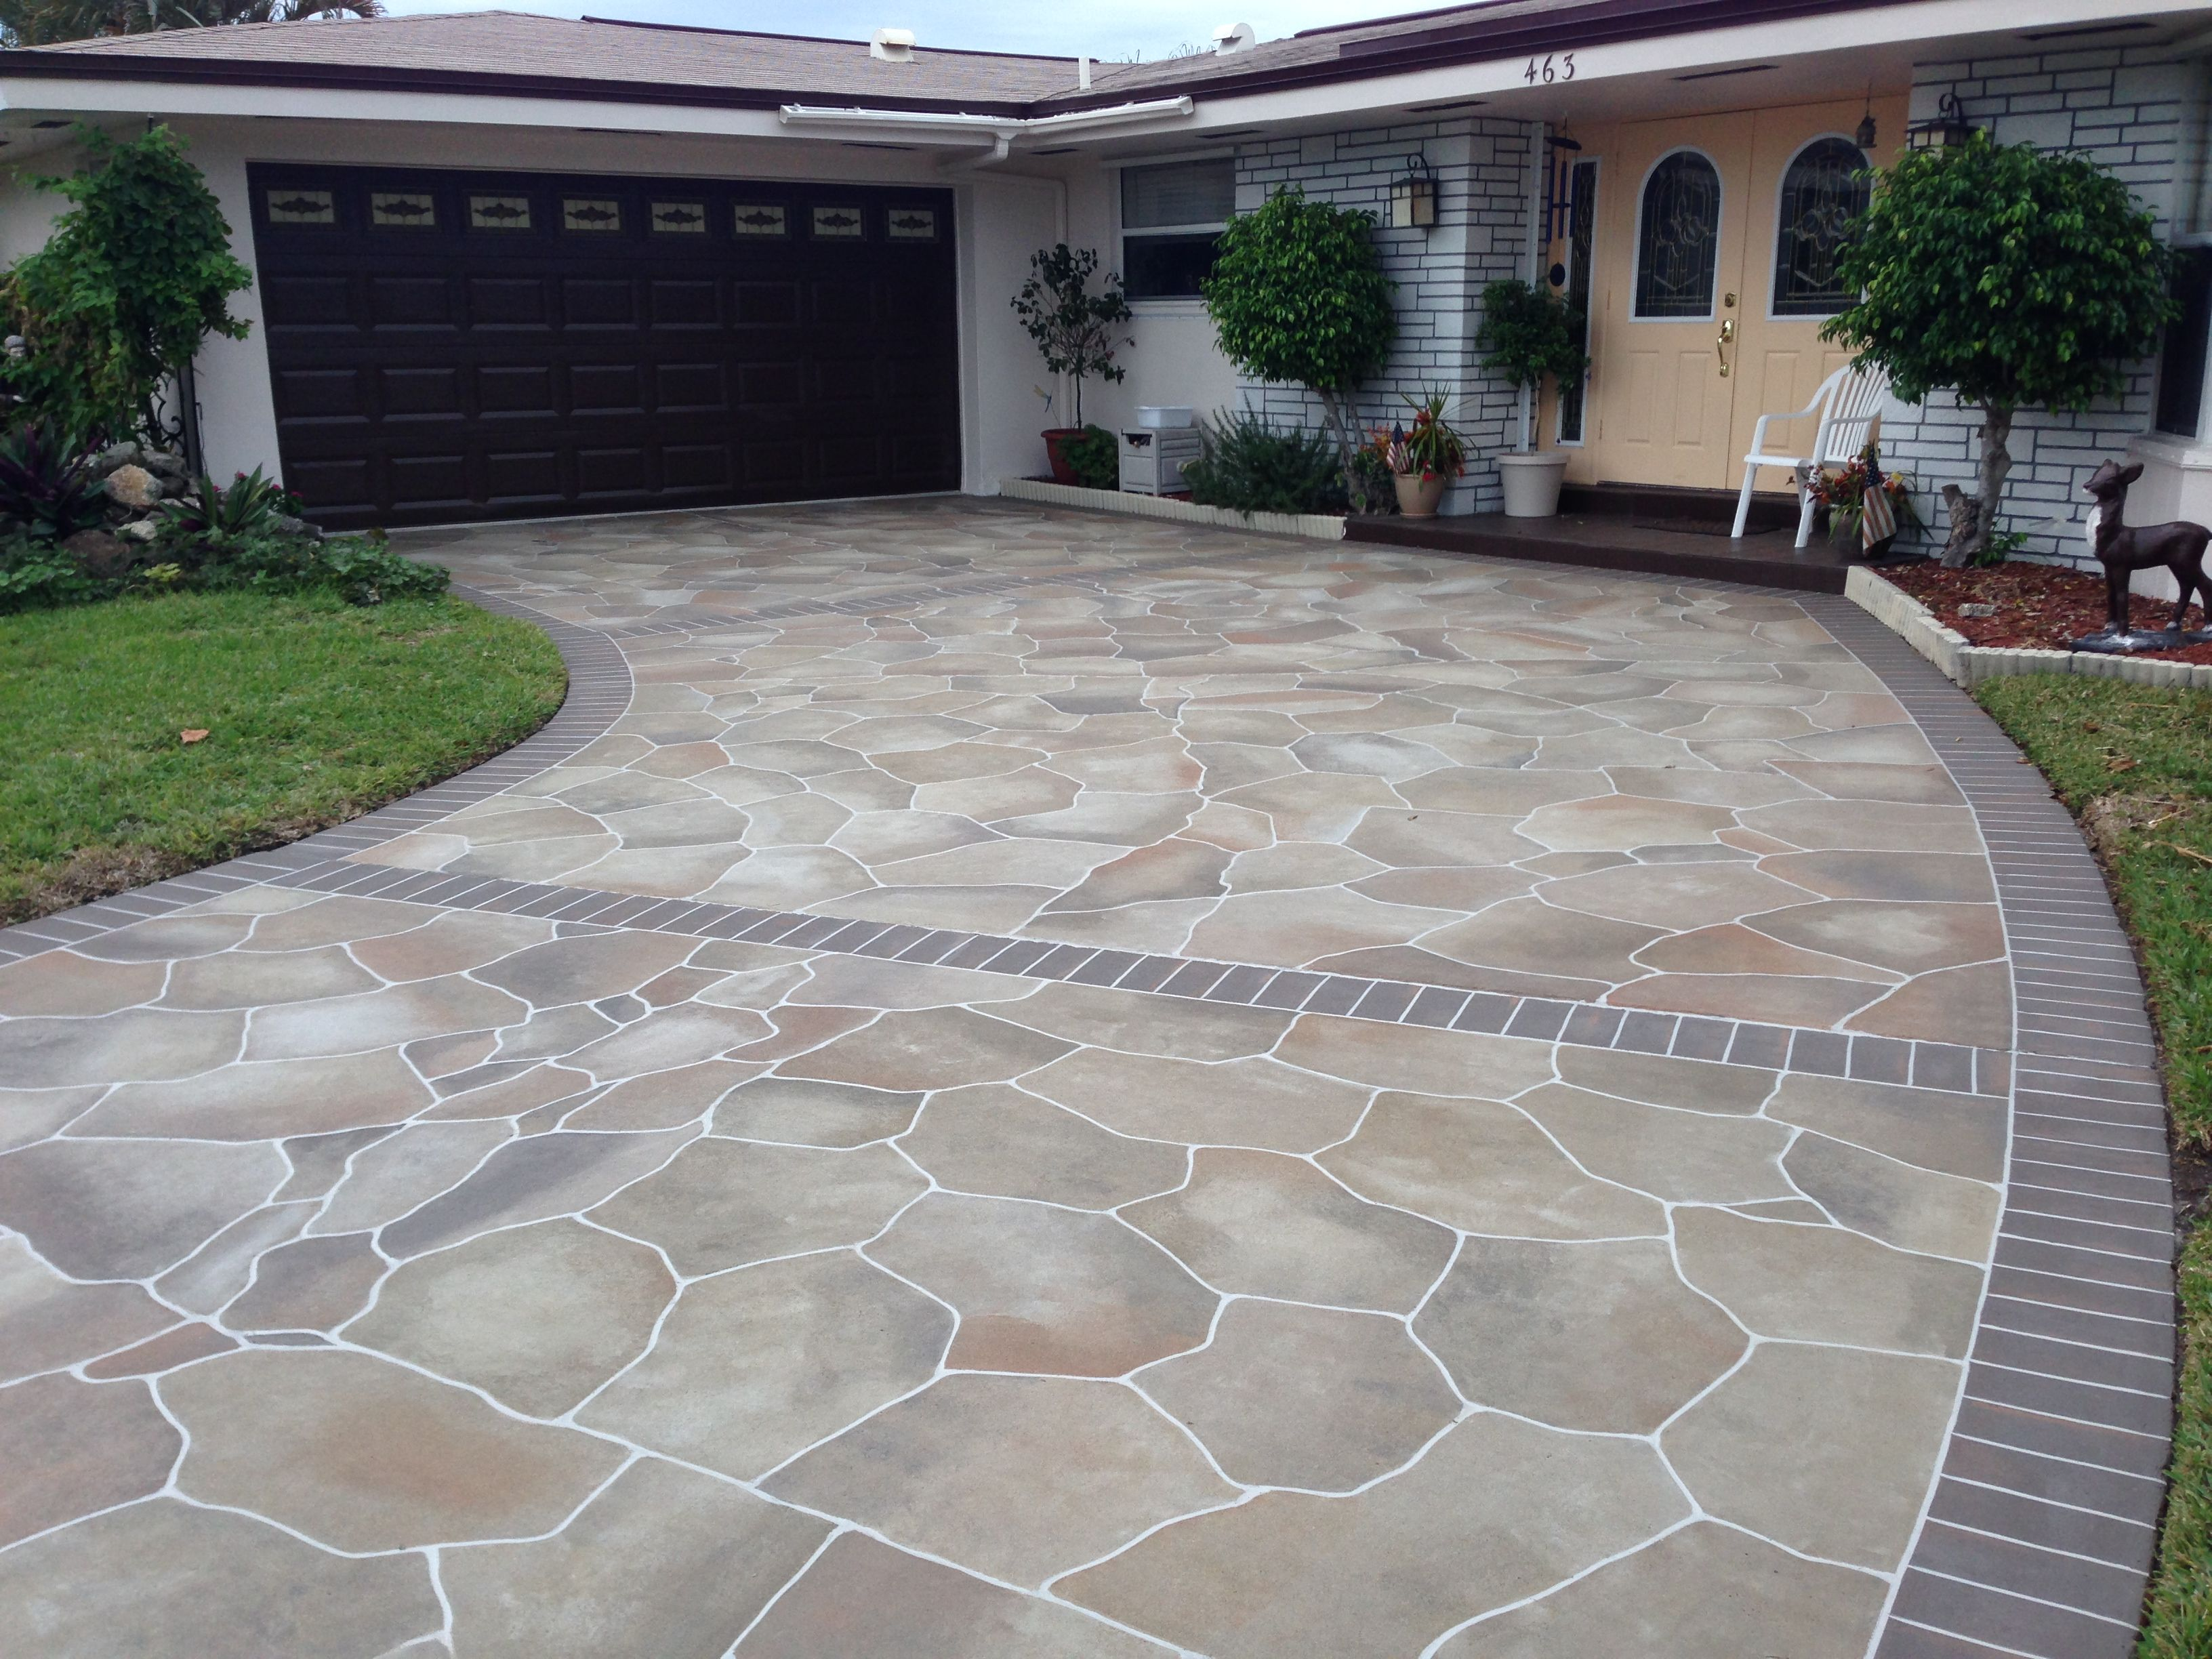 50 Best Driveway Ideas to Improve The Appeal of Your House ...